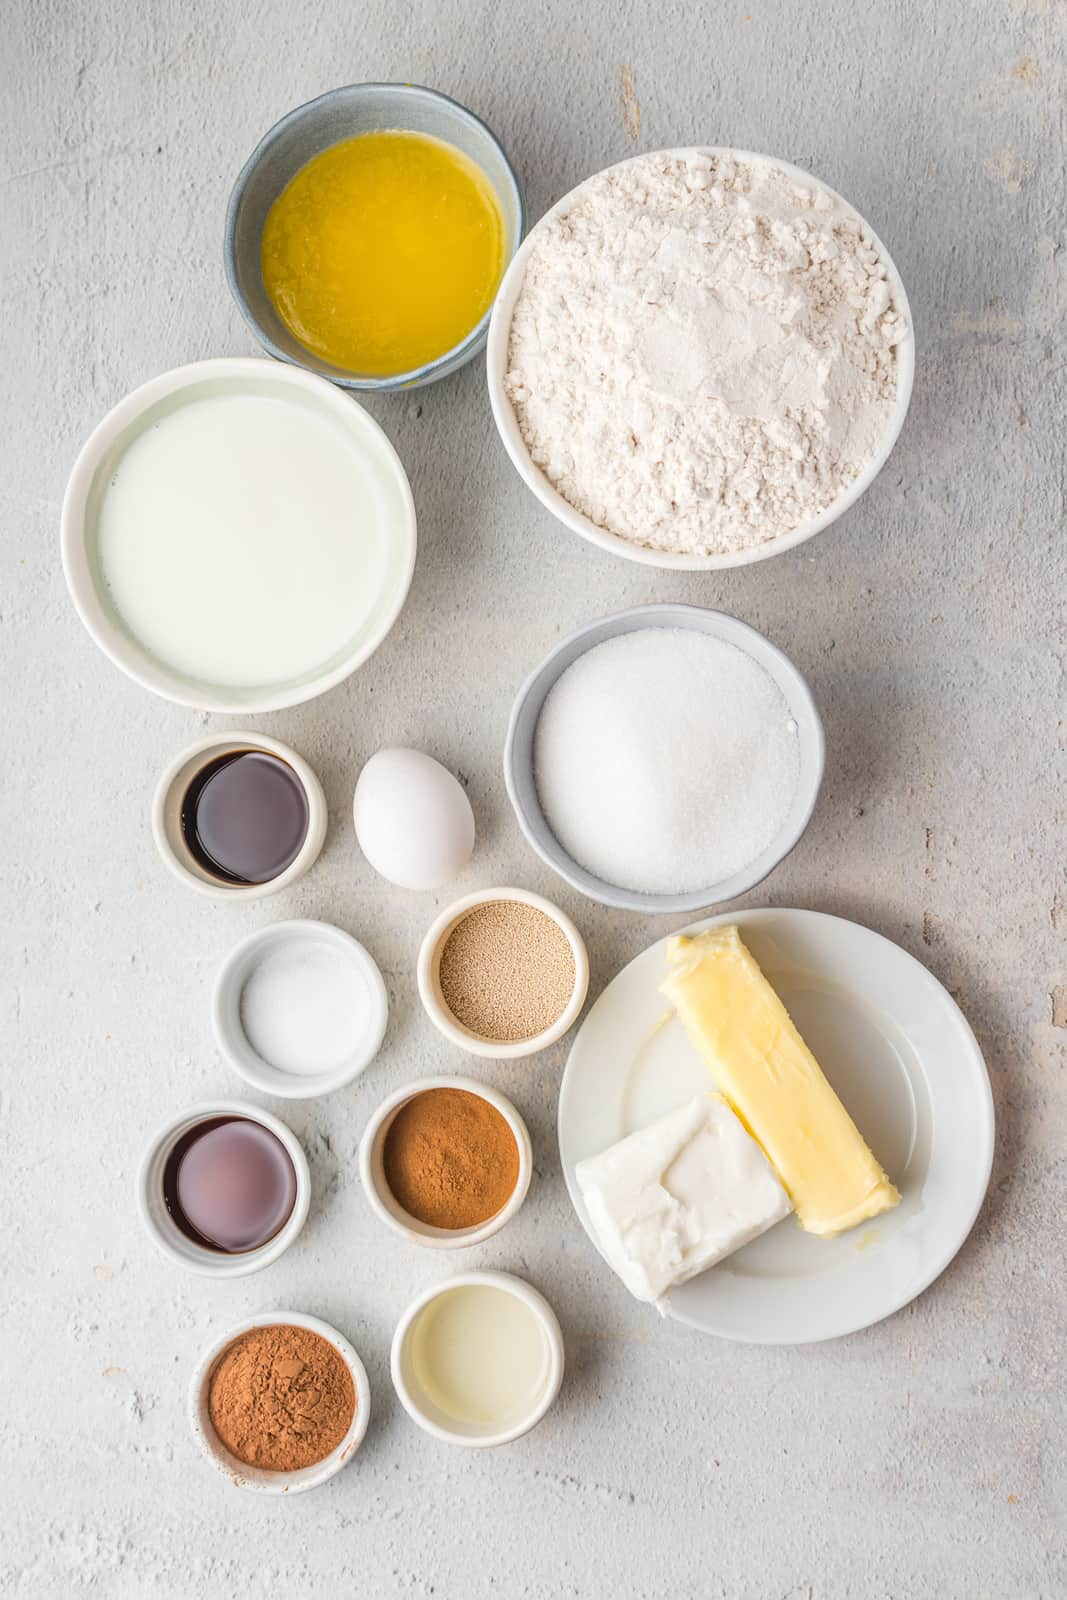 Ingredients needed to make Conchas